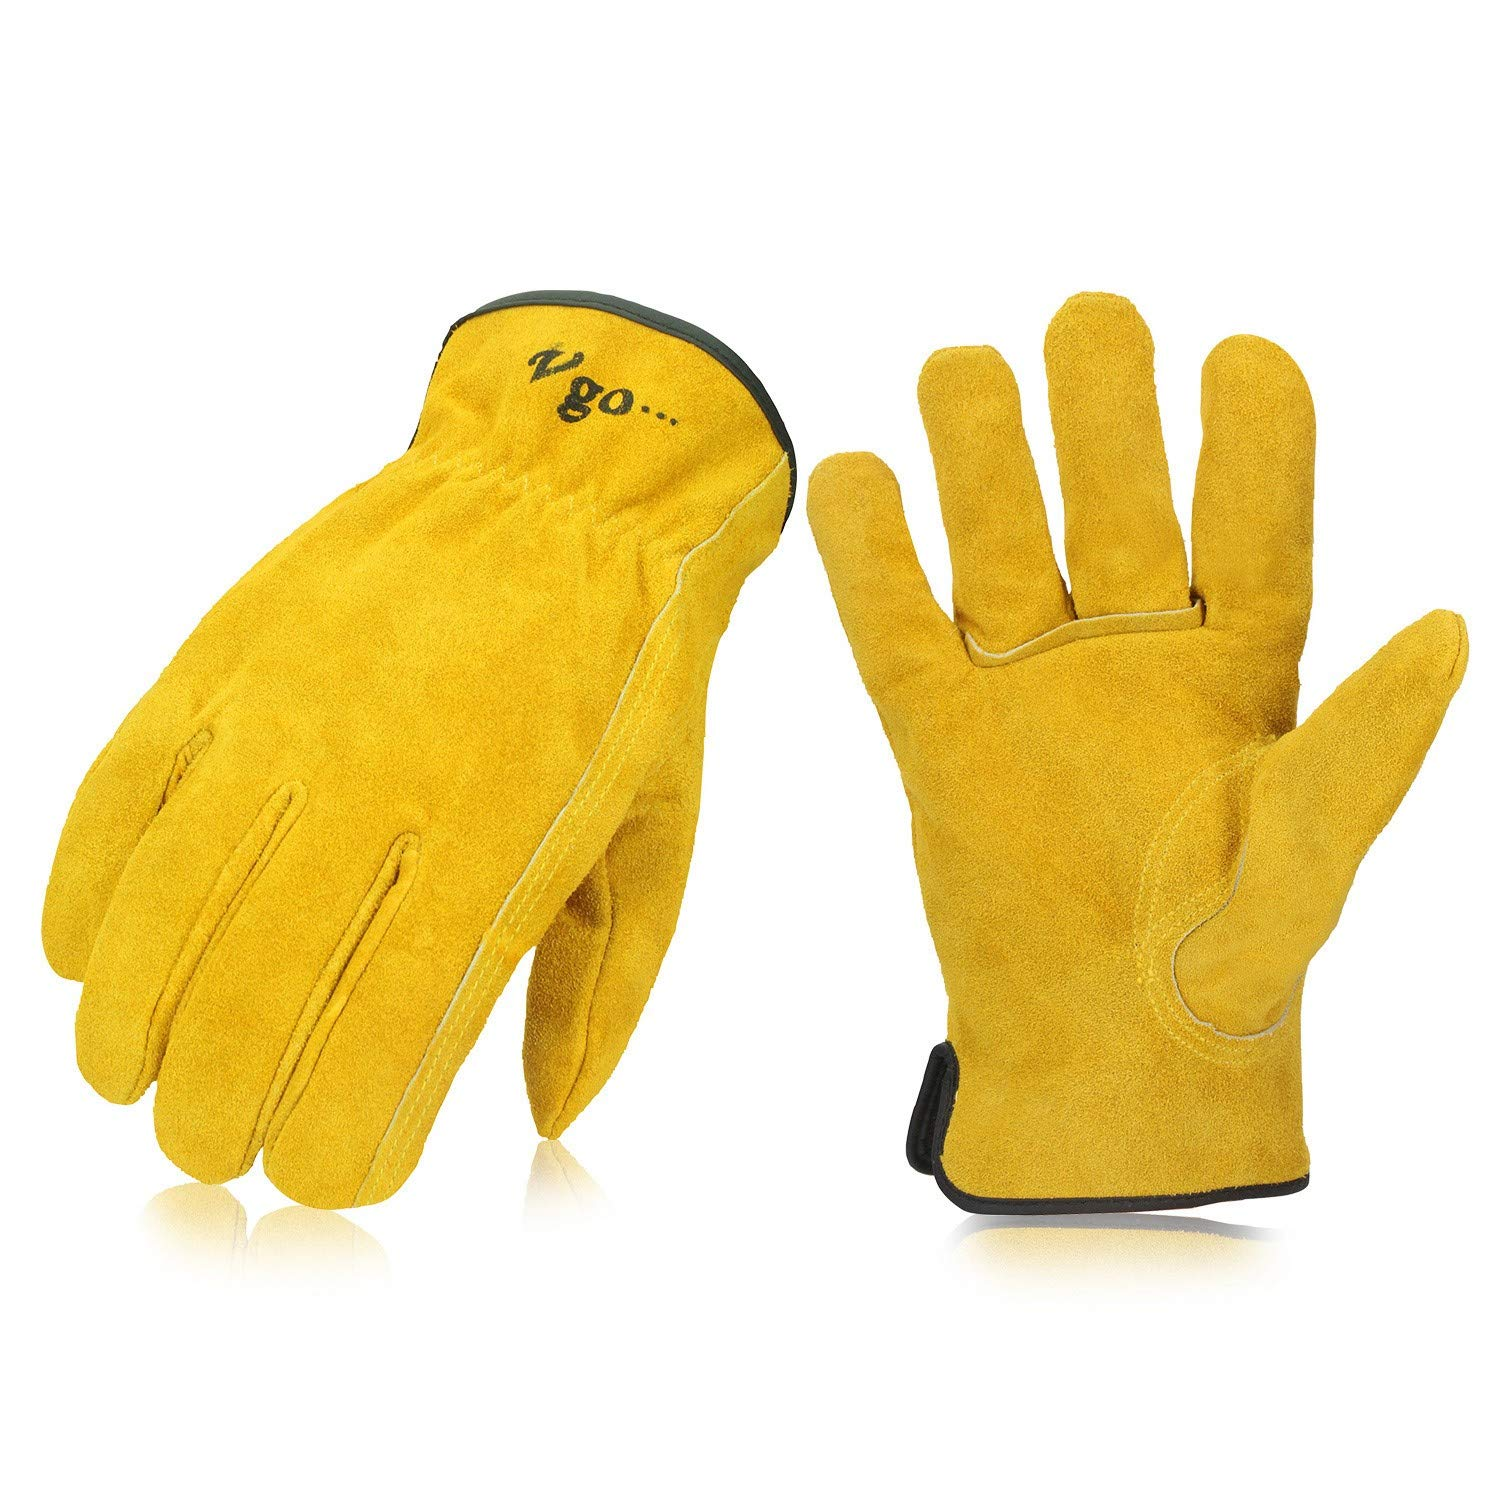 Vgo Unlined Cowhide Split Leather Work and Driver Gloves, for Heavy Duty/Truck Driving/Warehouse/Gardening/Farm(1Pair,Size XL,Gold,CB9501) Laborsing Safety Products Inc.